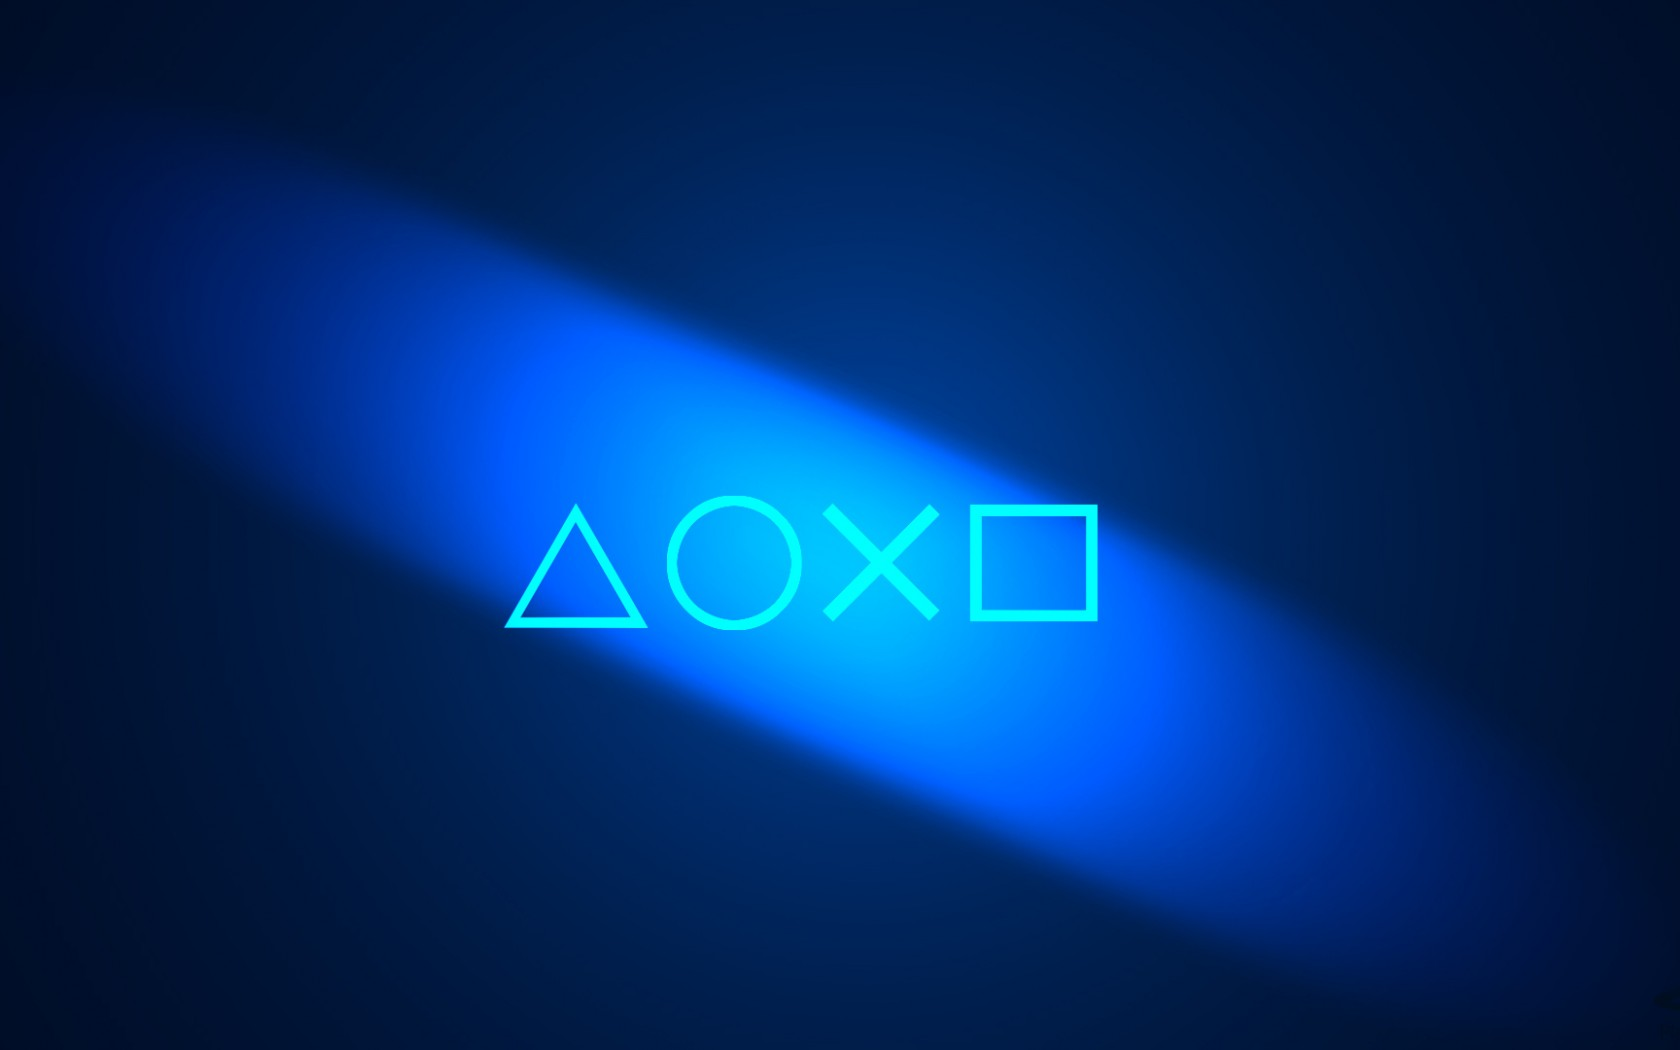 Wallpaper for ps4 wallpapersafari - High resolution playstation logo ...